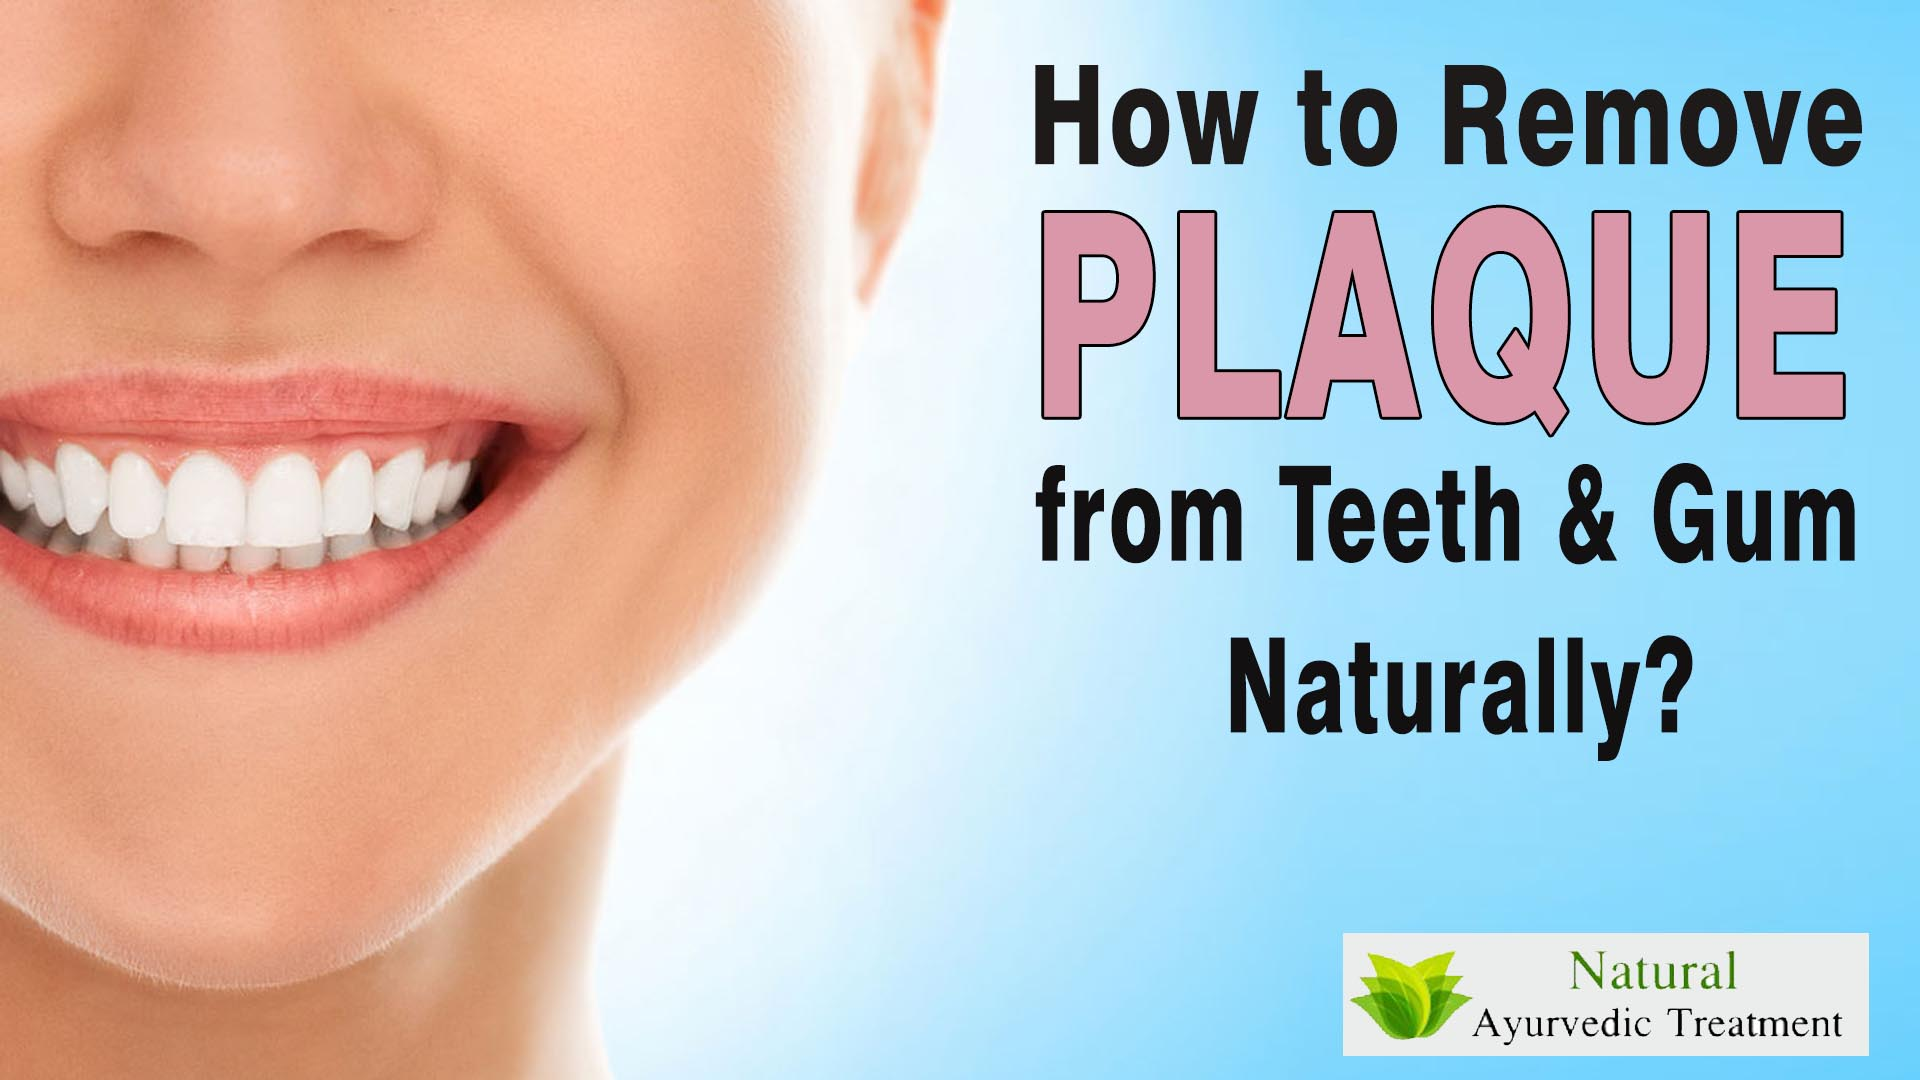 How to Remove Plaque from Teeth & Gum Naturally?